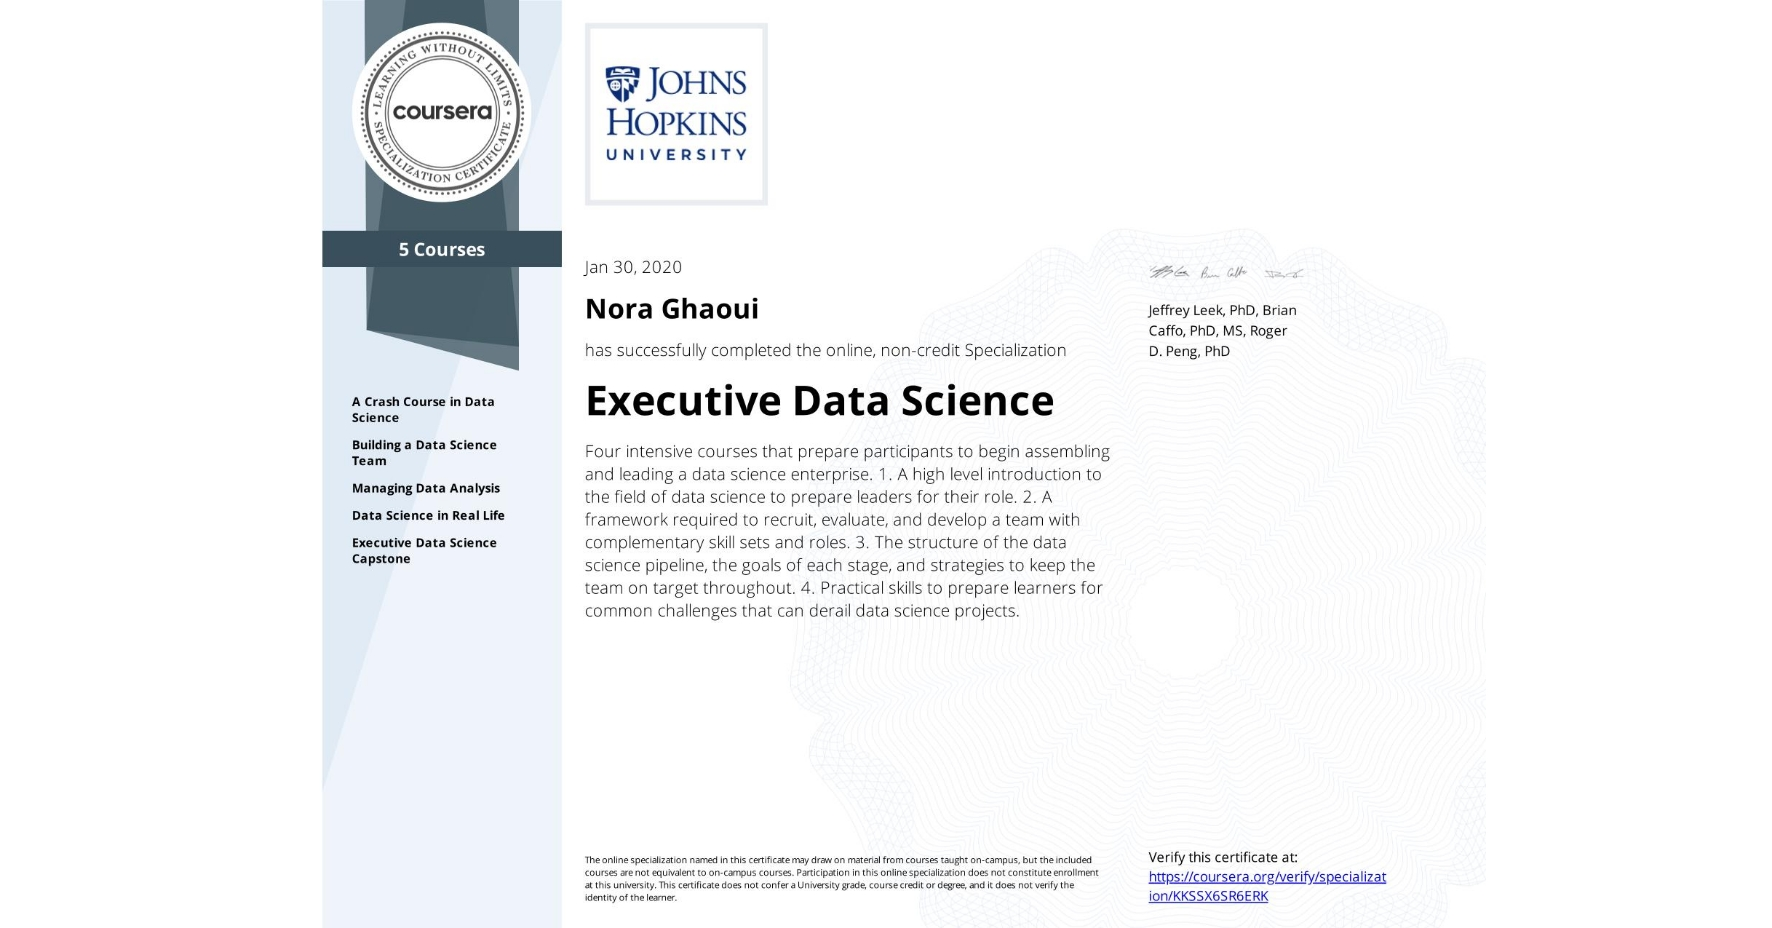 View certificate for Nora Ghaoui, Executive Data Science, offered through Coursera. Four intensive courses that prepare participants to begin assembling and leading a data science enterprise.    1. A high level introduction to the field of data science to prepare leaders for their role. 2. A framework required to recruit, evaluate, and develop a team with complementary skill sets and roles. 3. The structure of the data science pipeline, the goals of each stage, and strategies to keep the team on target throughout. 4. Practical skills to prepare learners for common challenges that can derail data science projects.